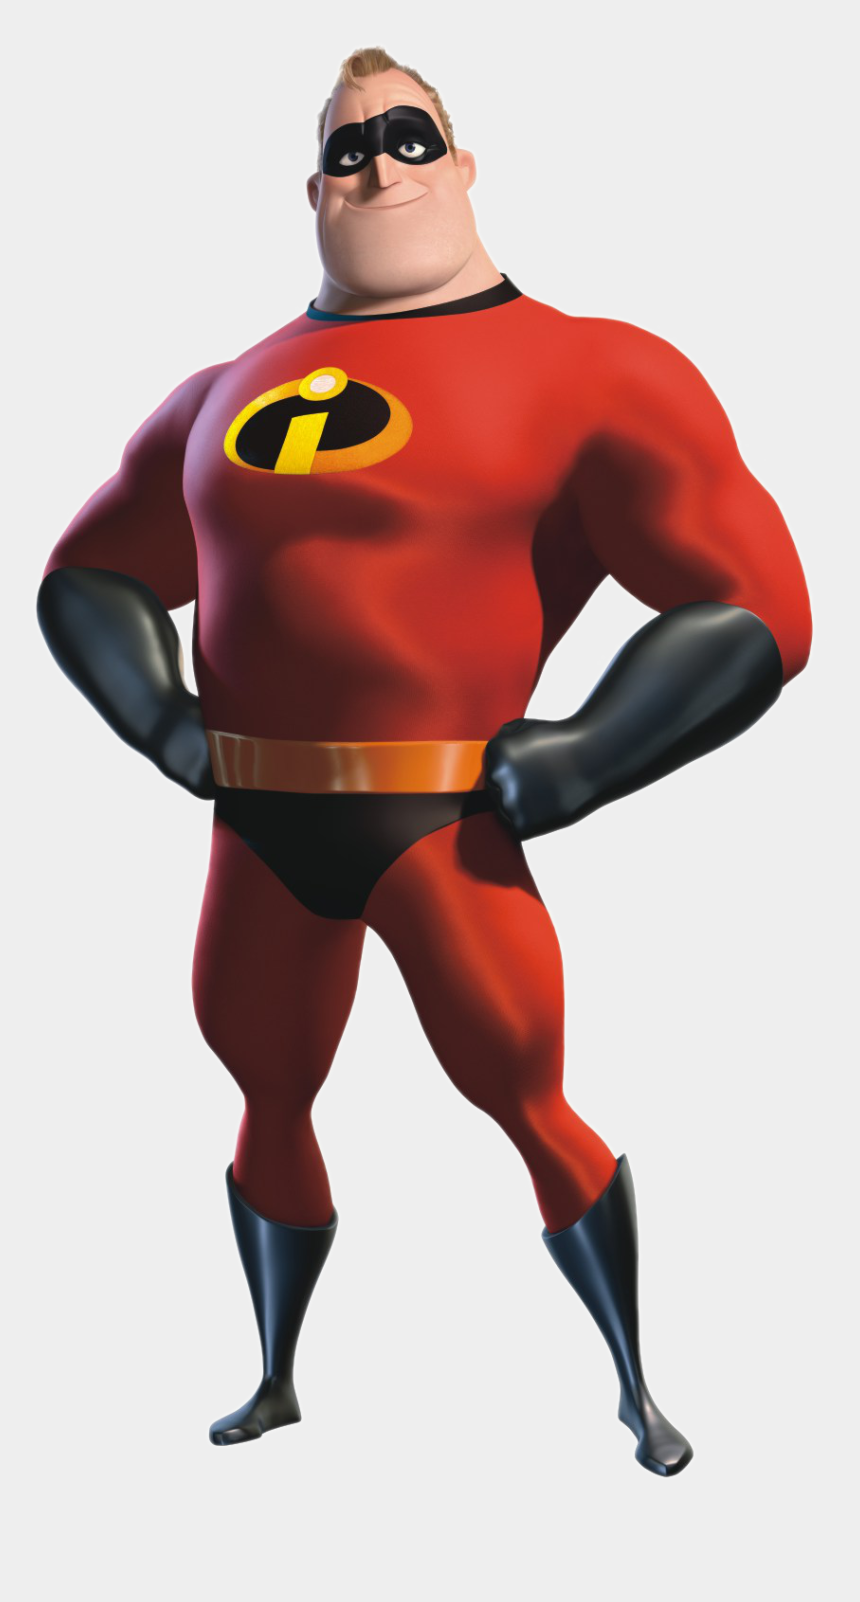 muscle clipart, Cartoons - Free Disneyu0027s The Incredi - Mr Incredible